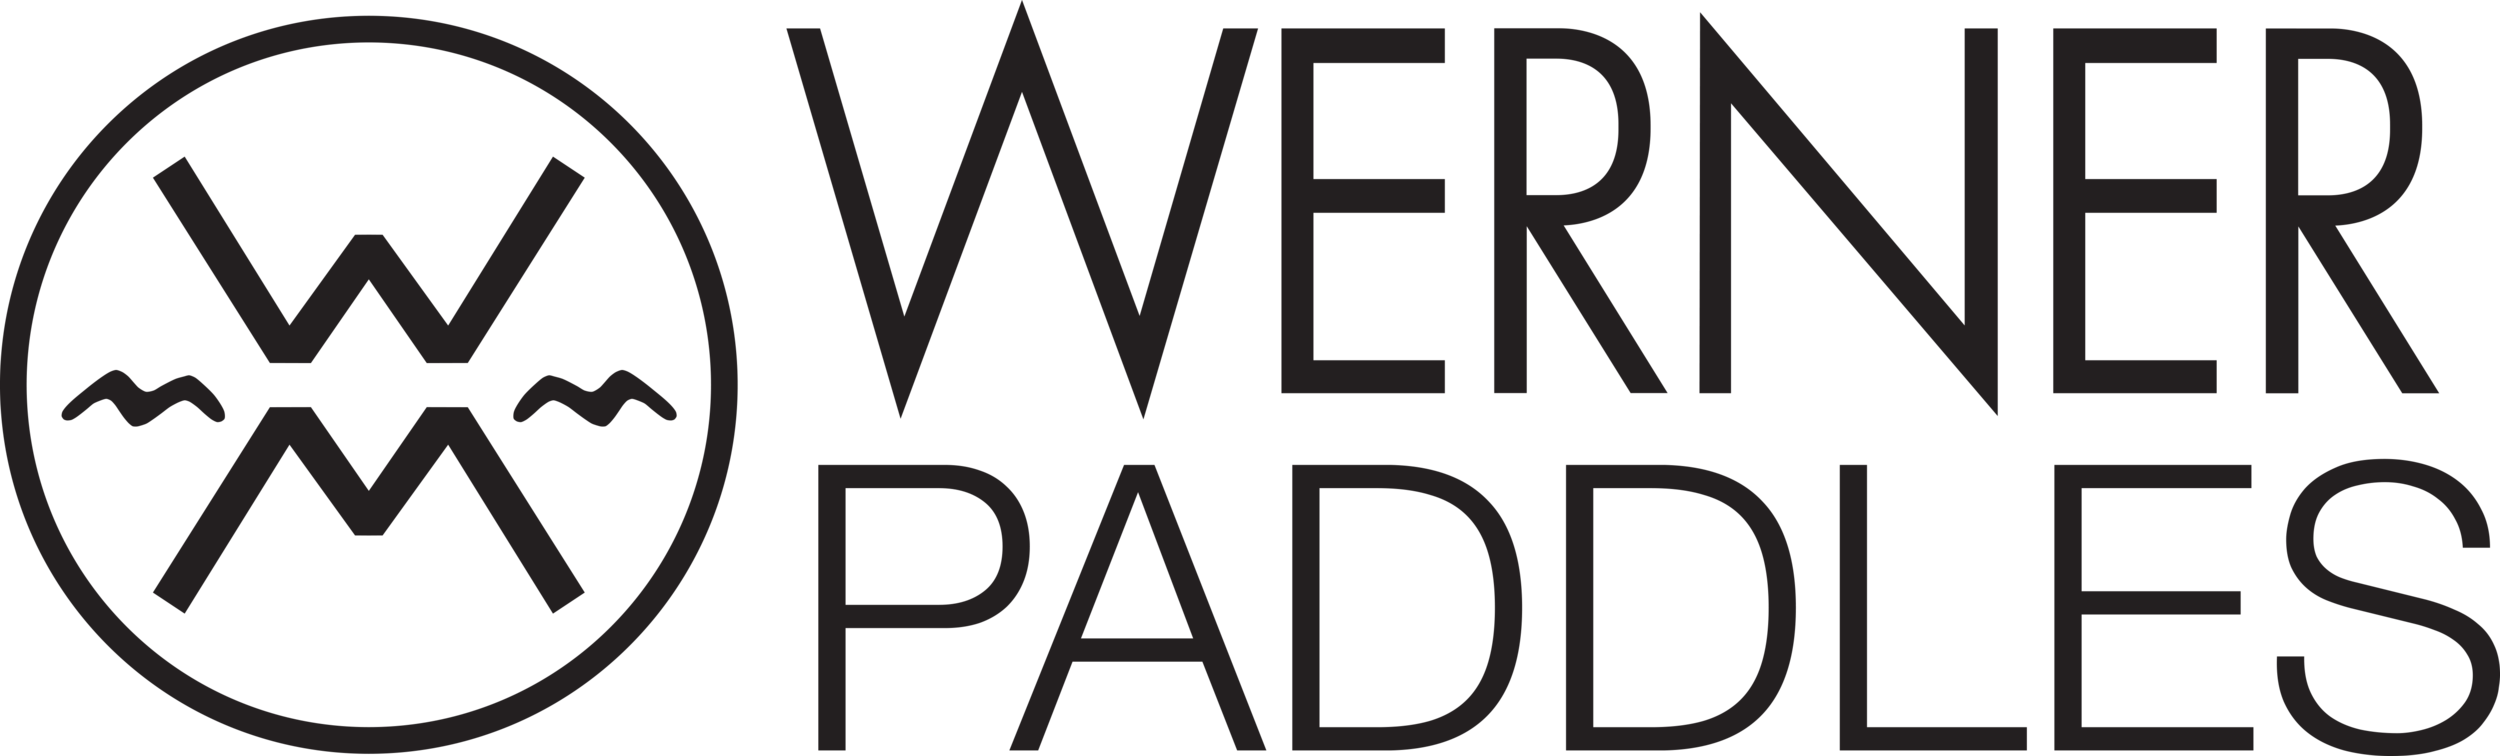 Family-Logo-WERNER-PADDLES-Side-Stacked-Black.png